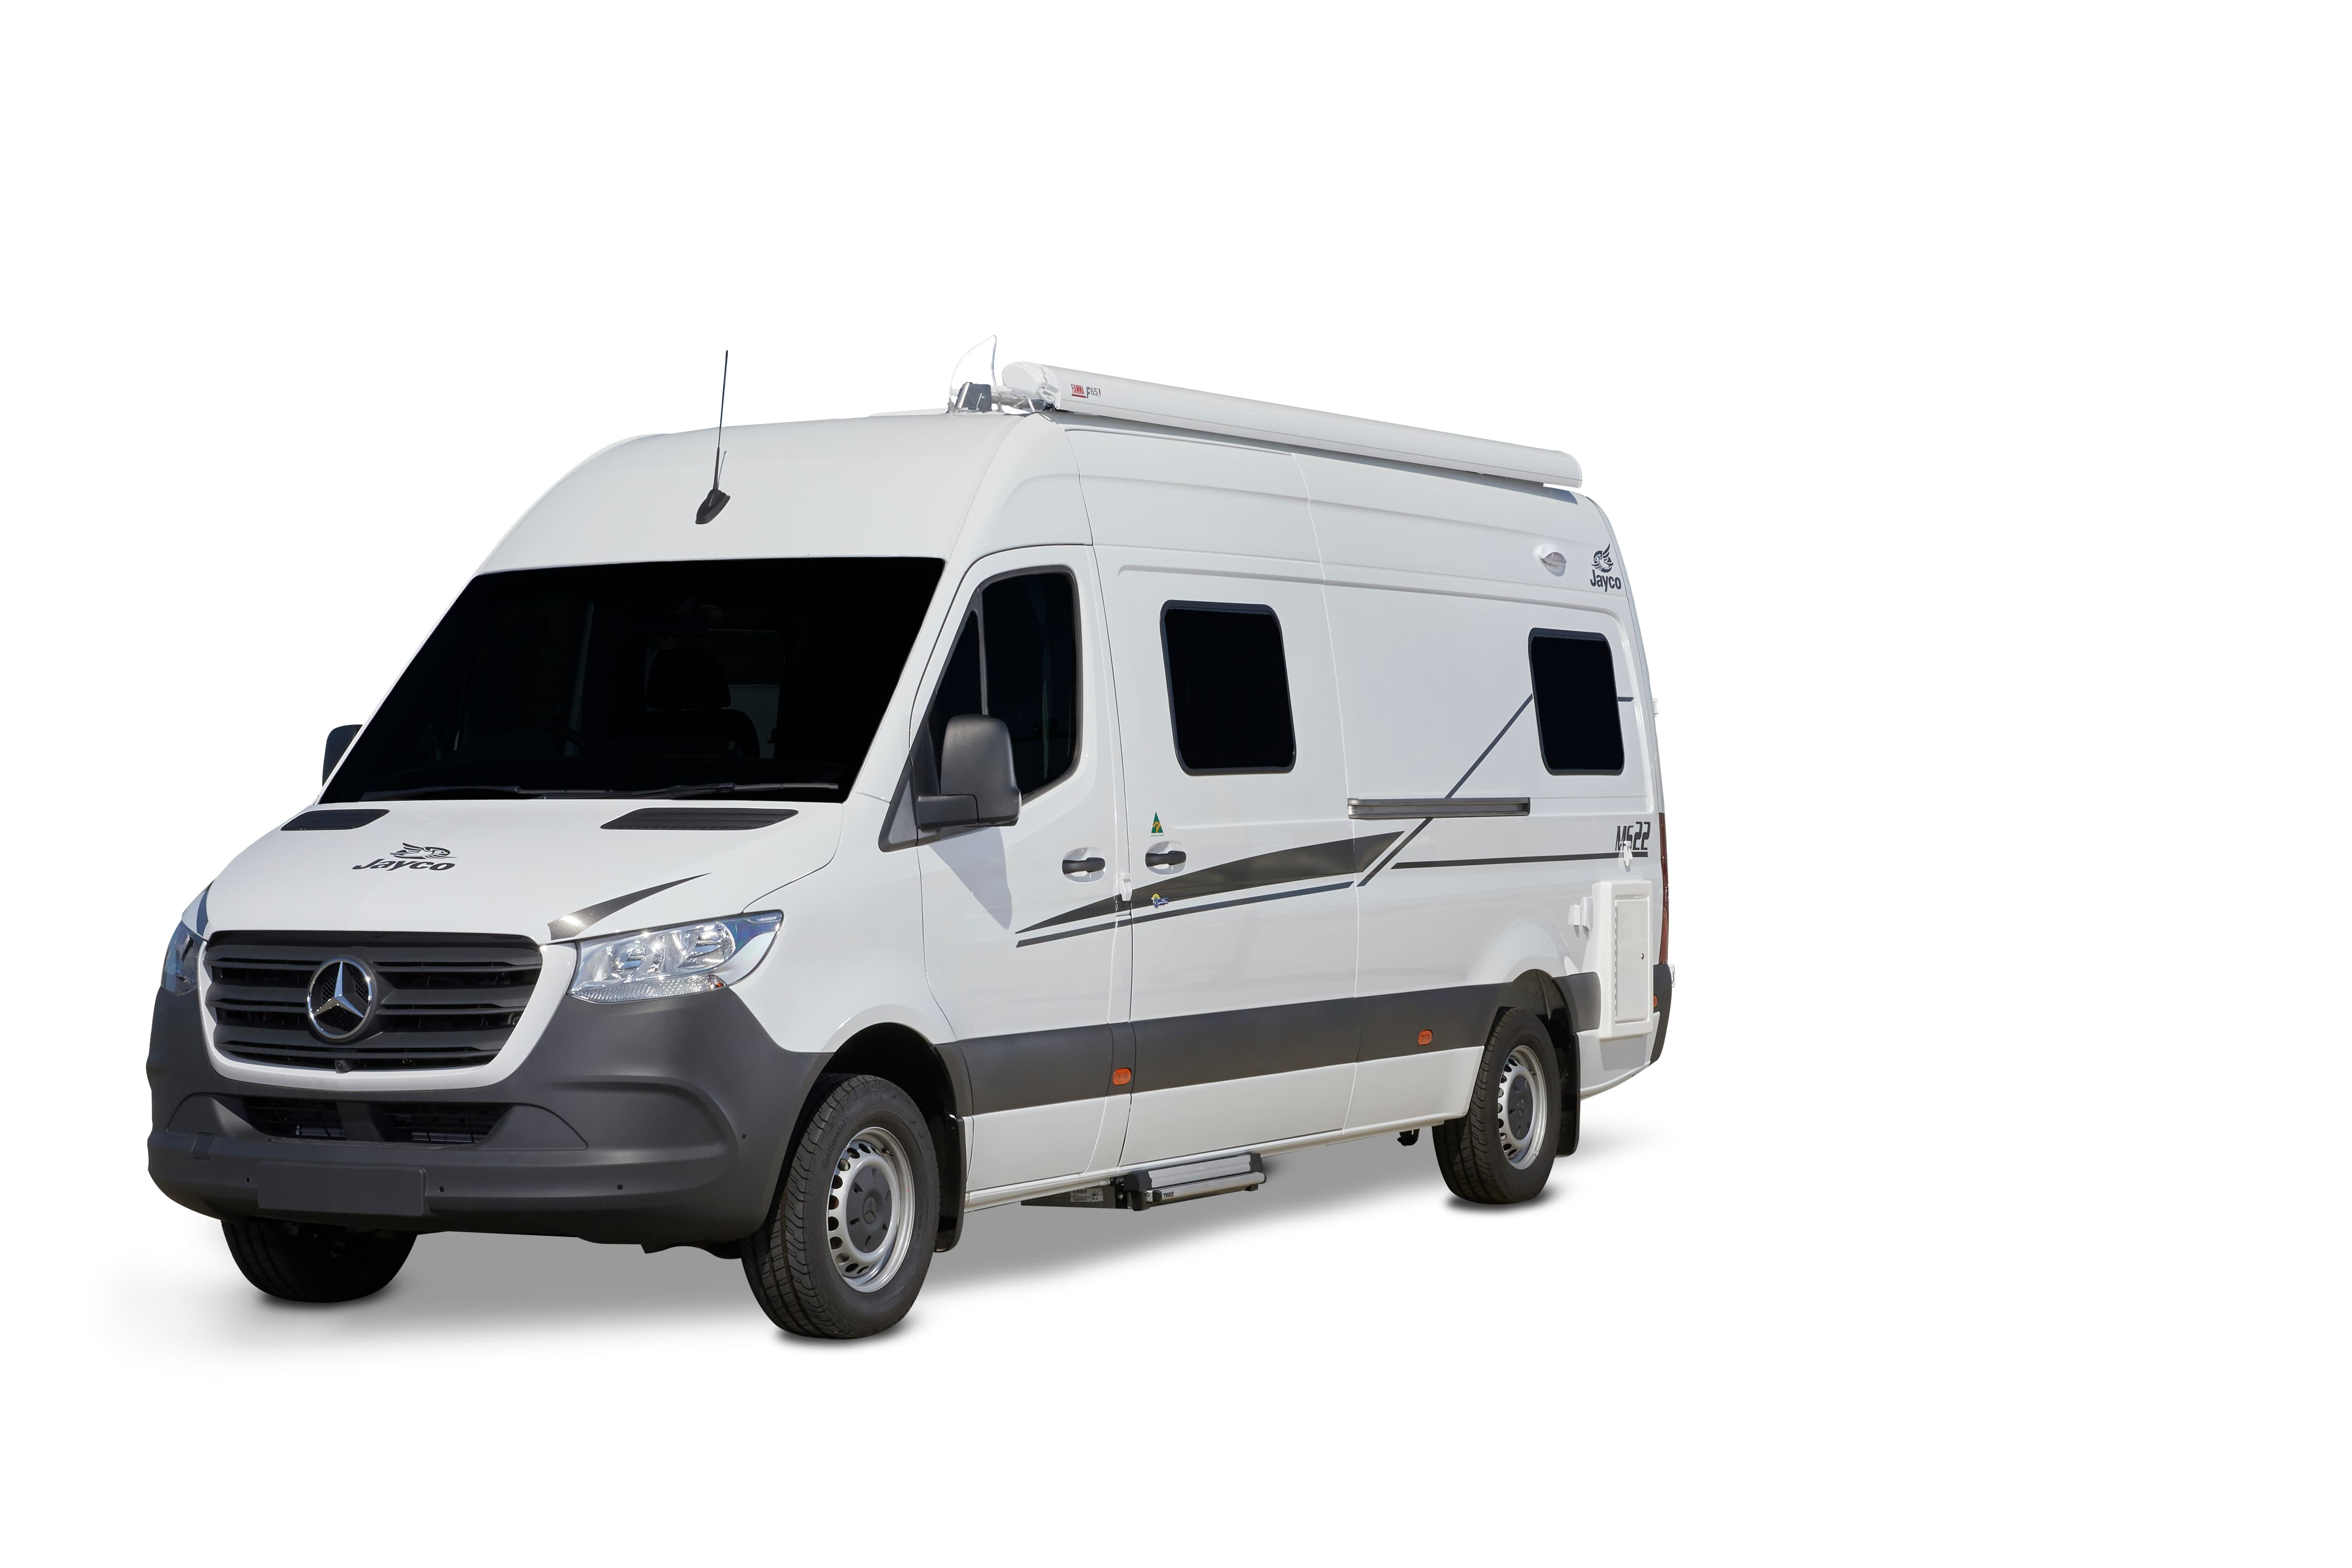 Jayco MS.22-2 campervan